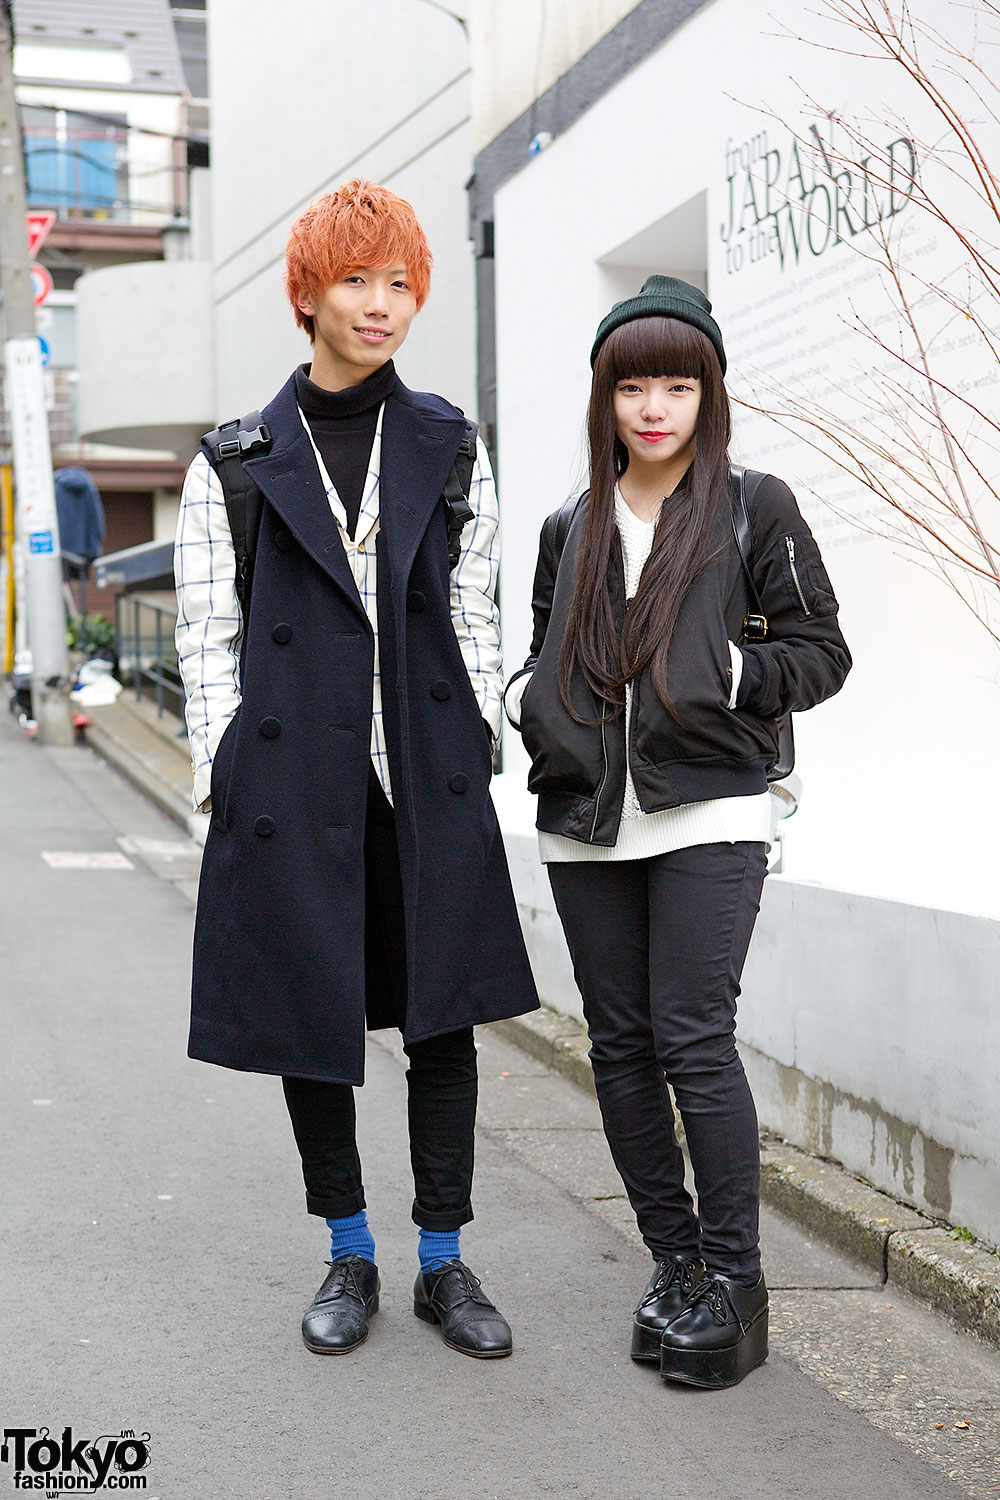 Harajuku Monochrome Fashion